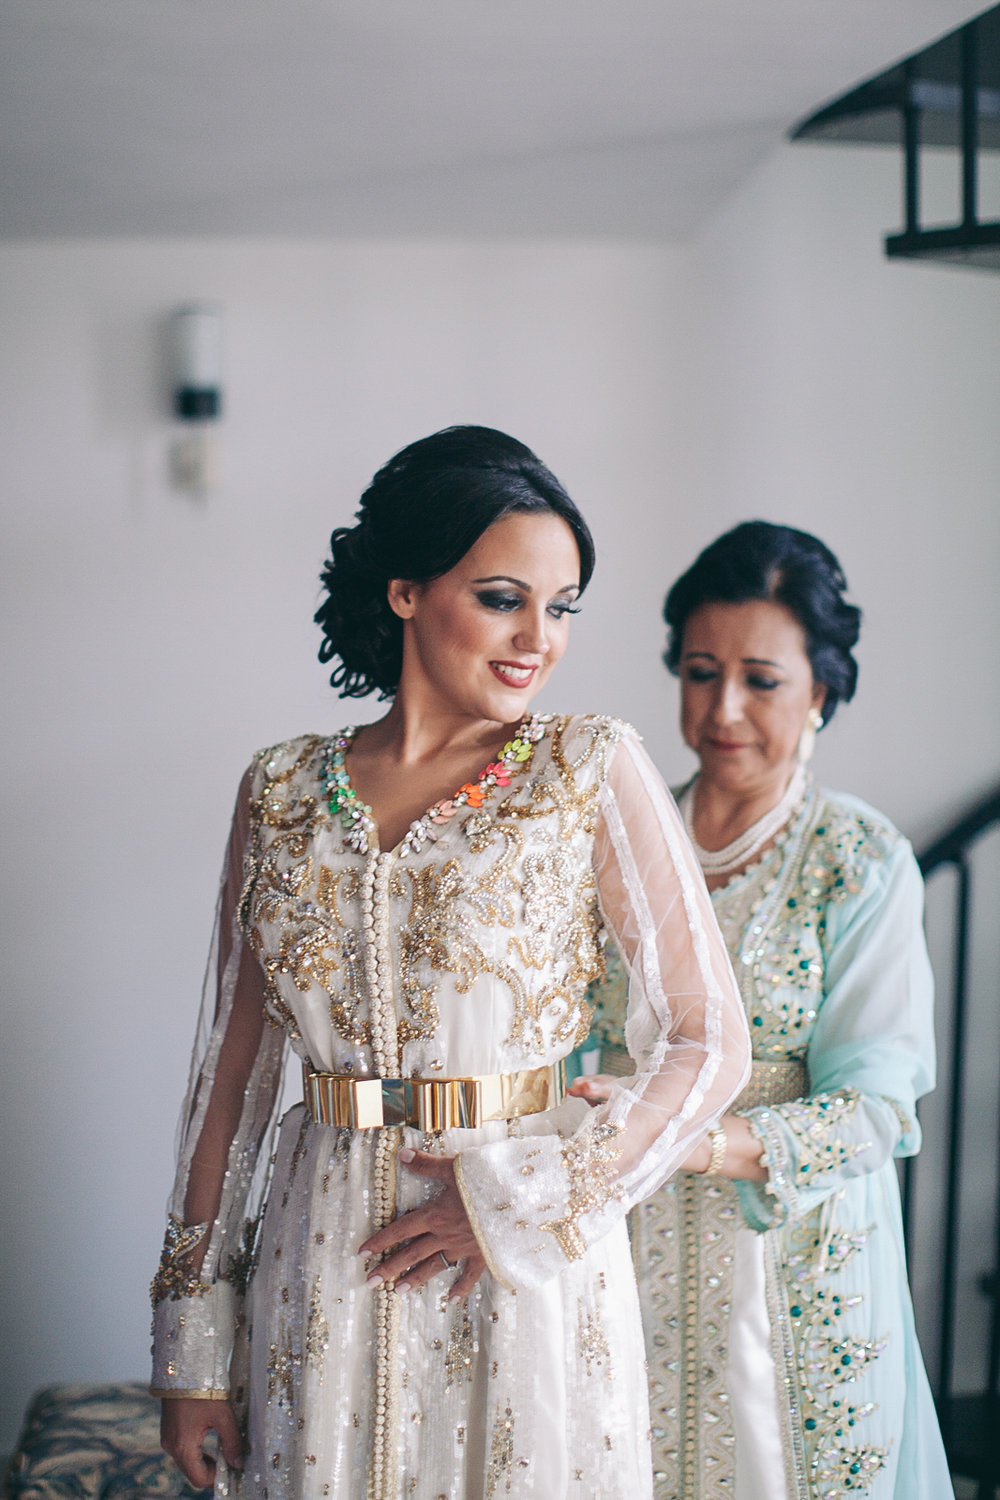 traditional_moroccan_wedding_photographry_casablanca_morocco_houda_vivek_ebony_siovhan_bokeh_photography_029.jpg